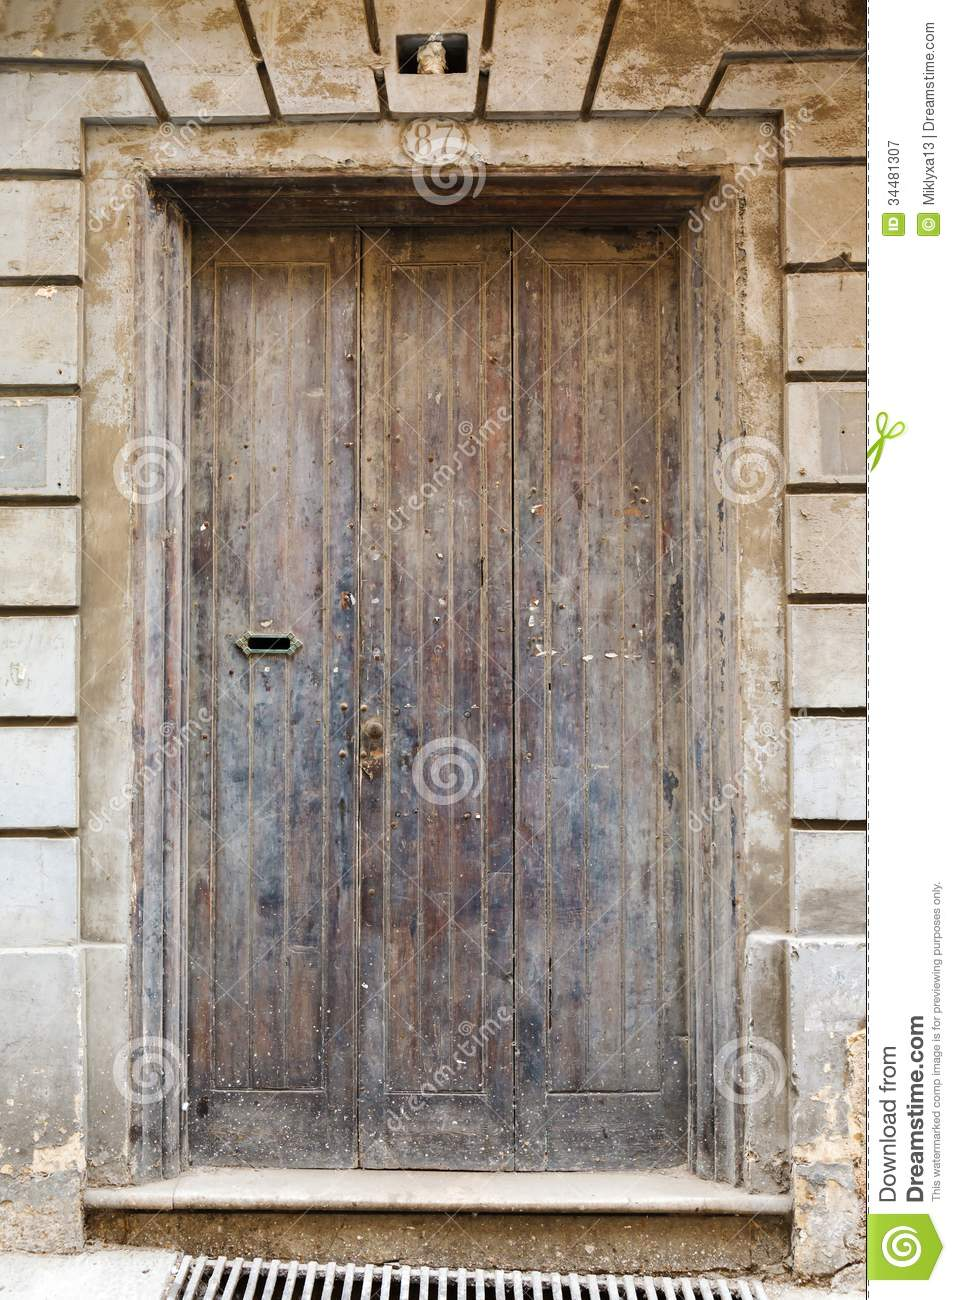 Wooden front door to the house royalty free stock for House door image